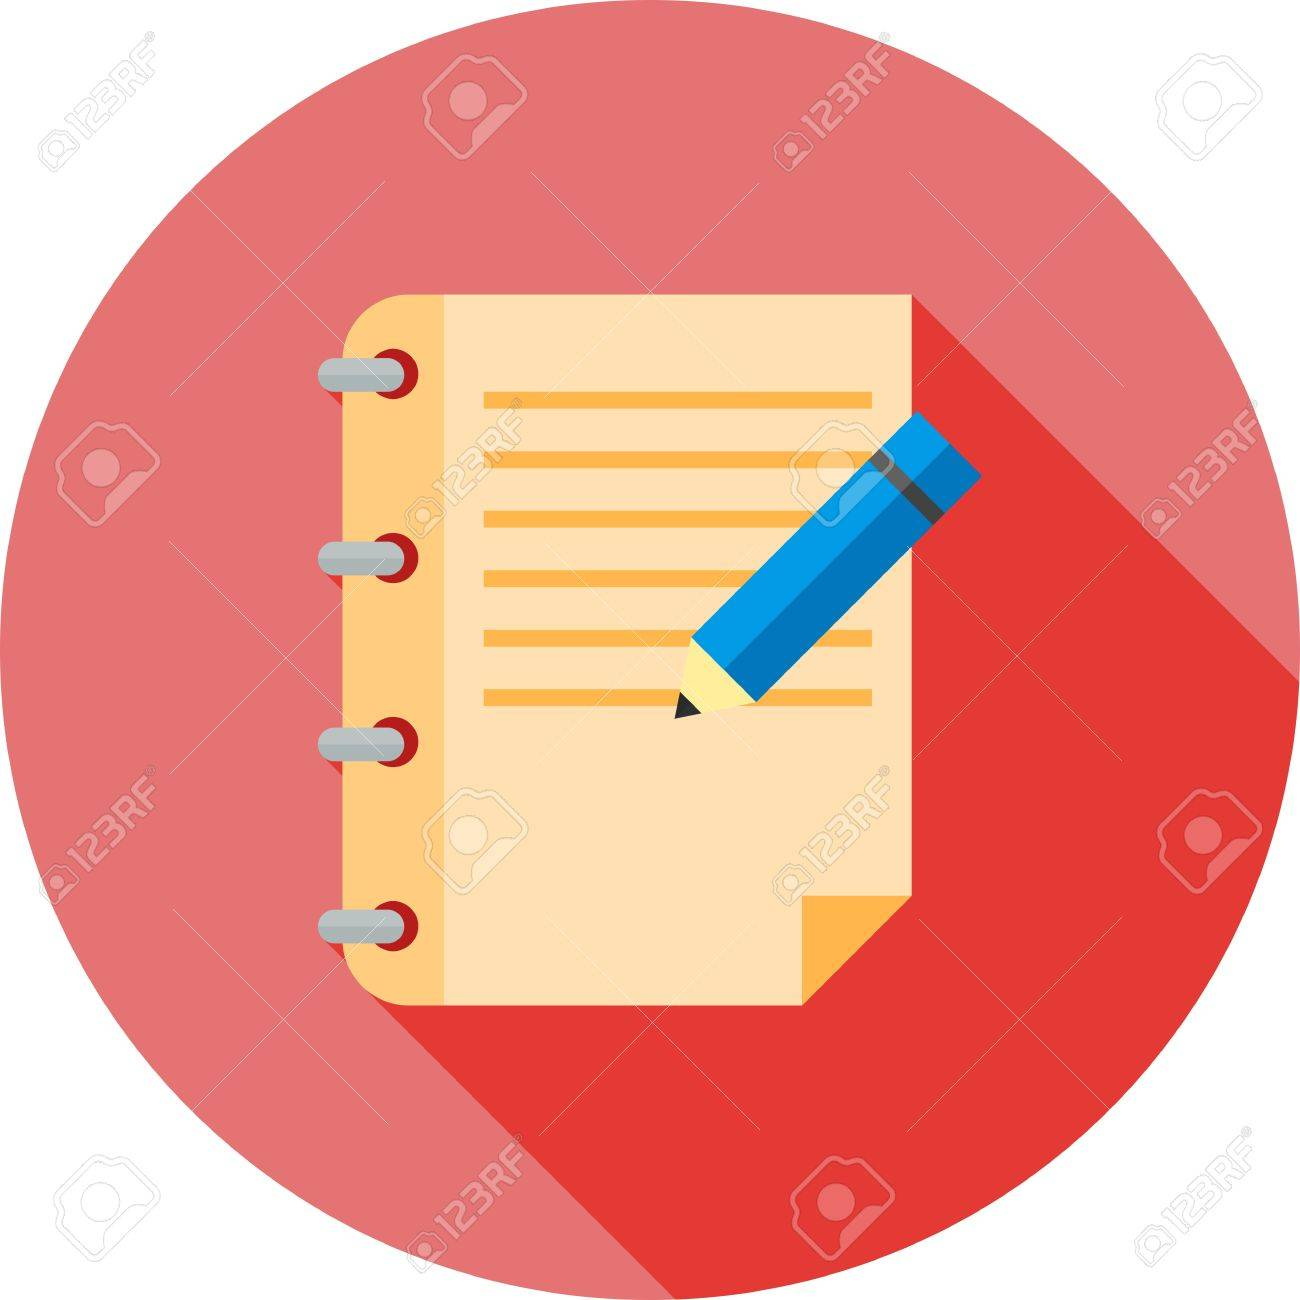 For custom essay help reviews was wrong education assignment